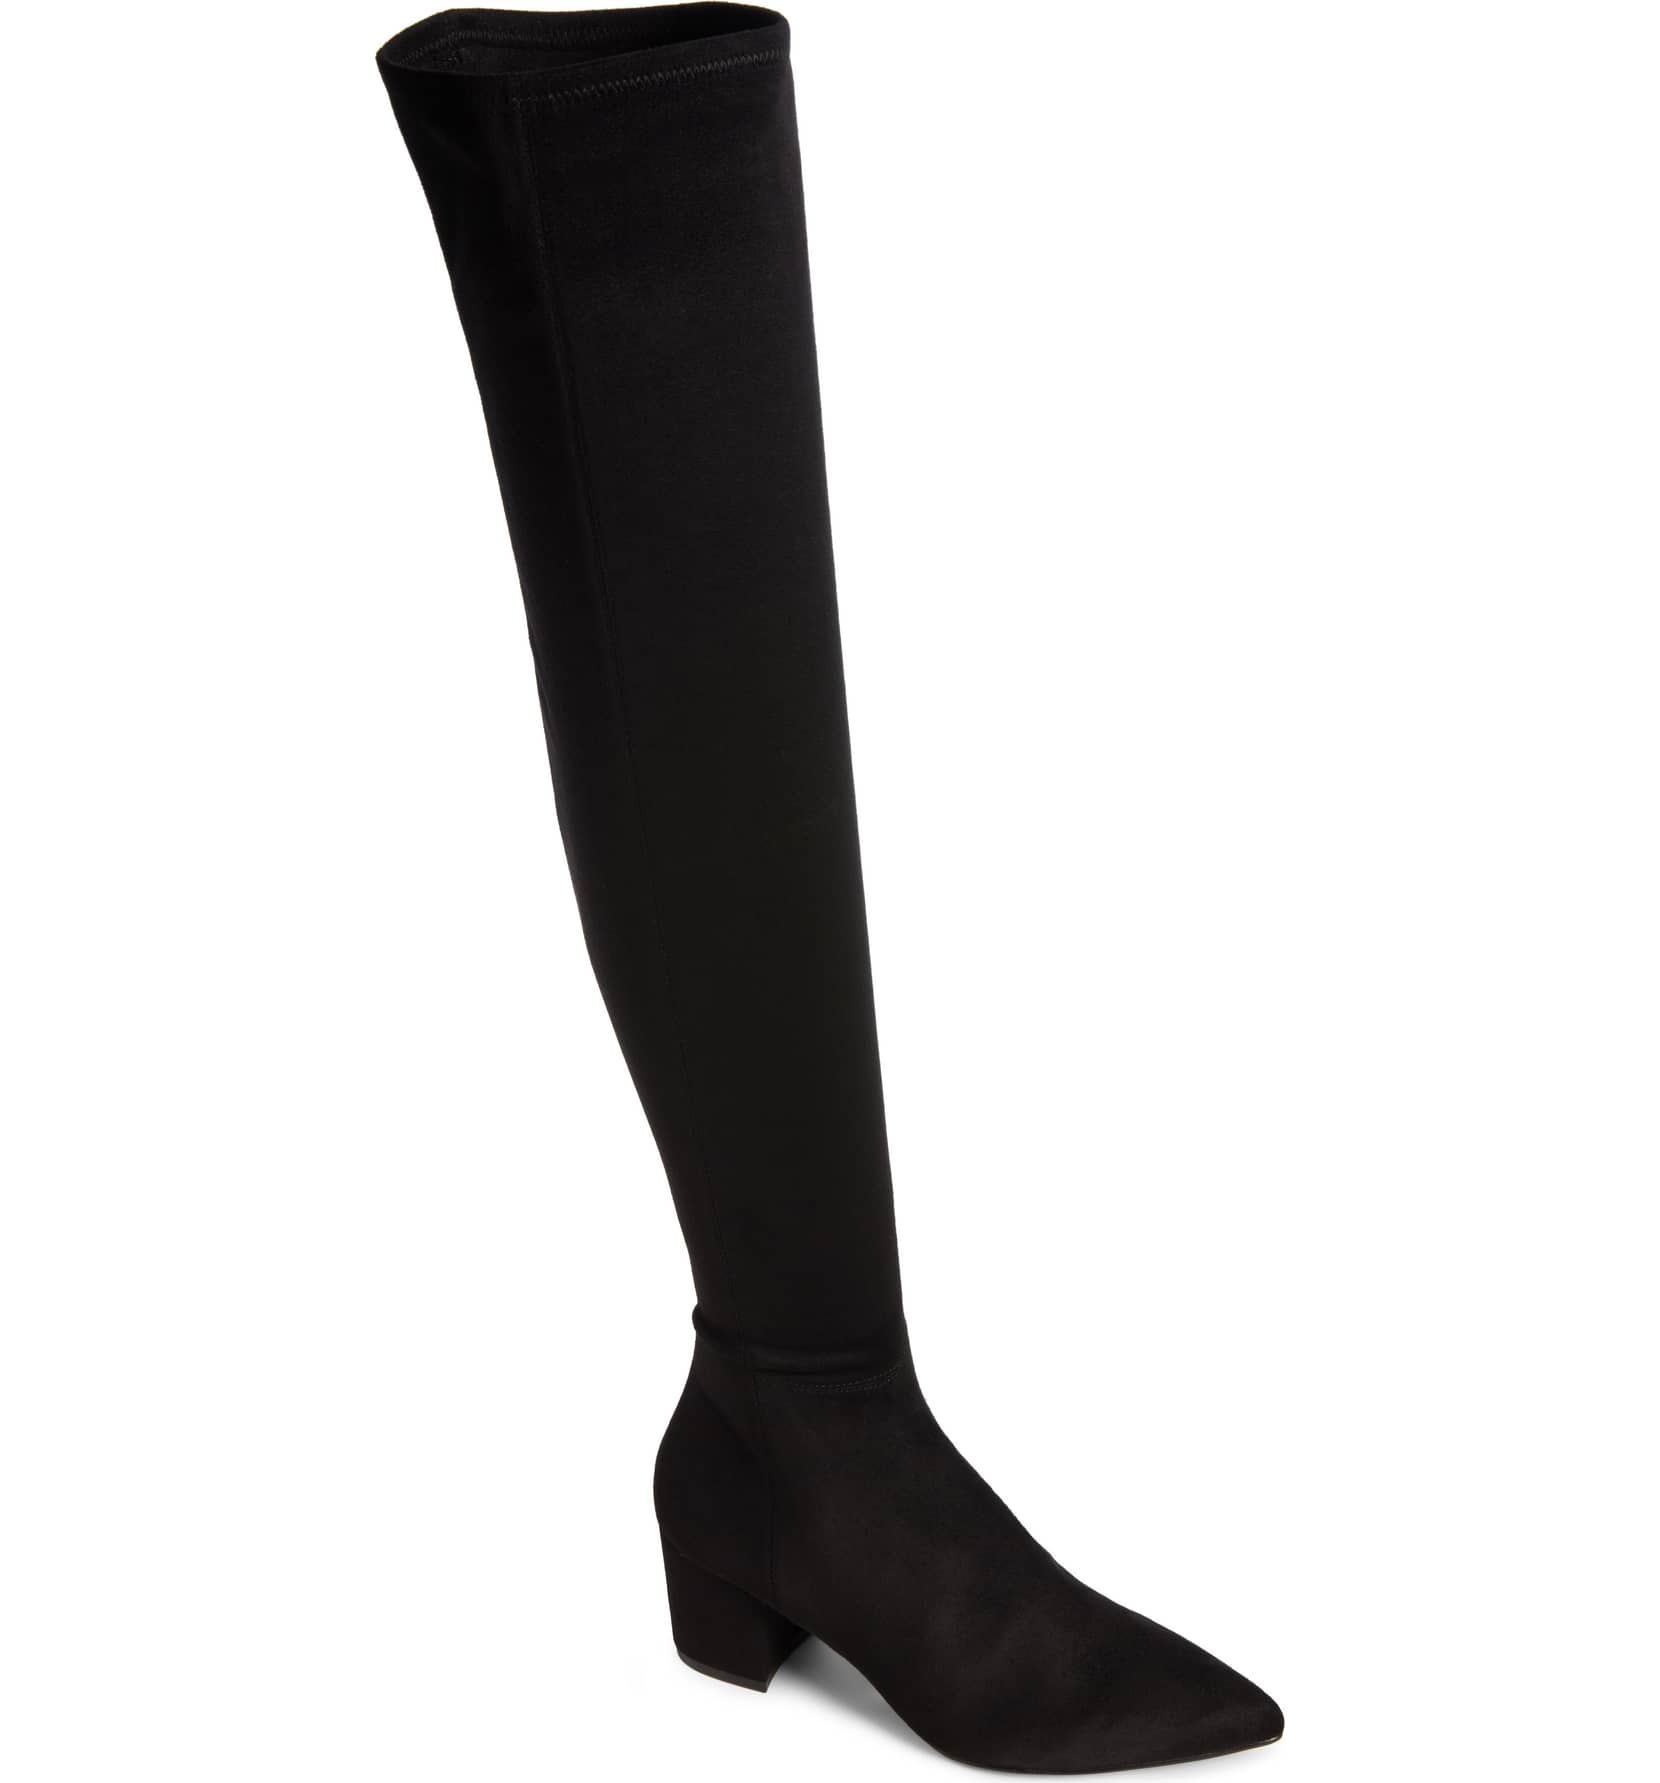 Cute Boots for Fall, Over-the-Knee Boots